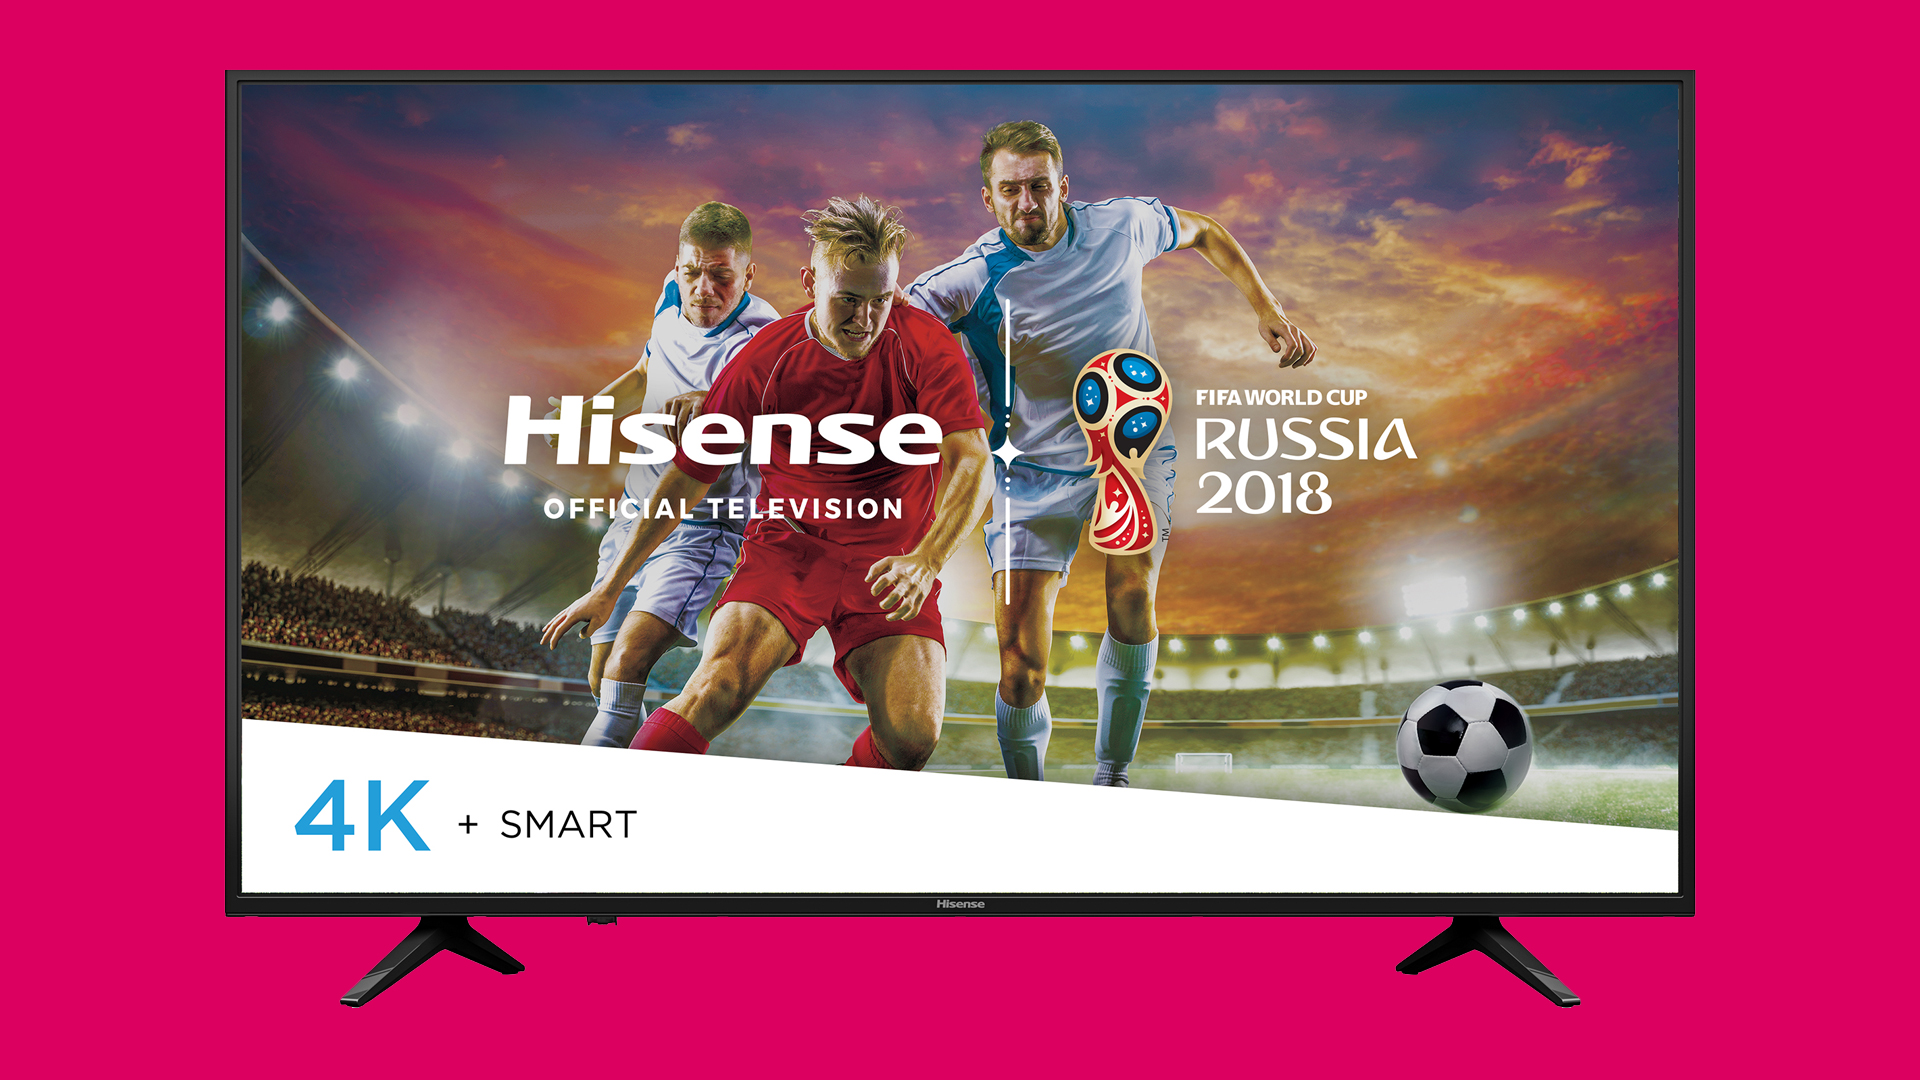 Hisense H6 Series 4K UHD Smart TV (2018)